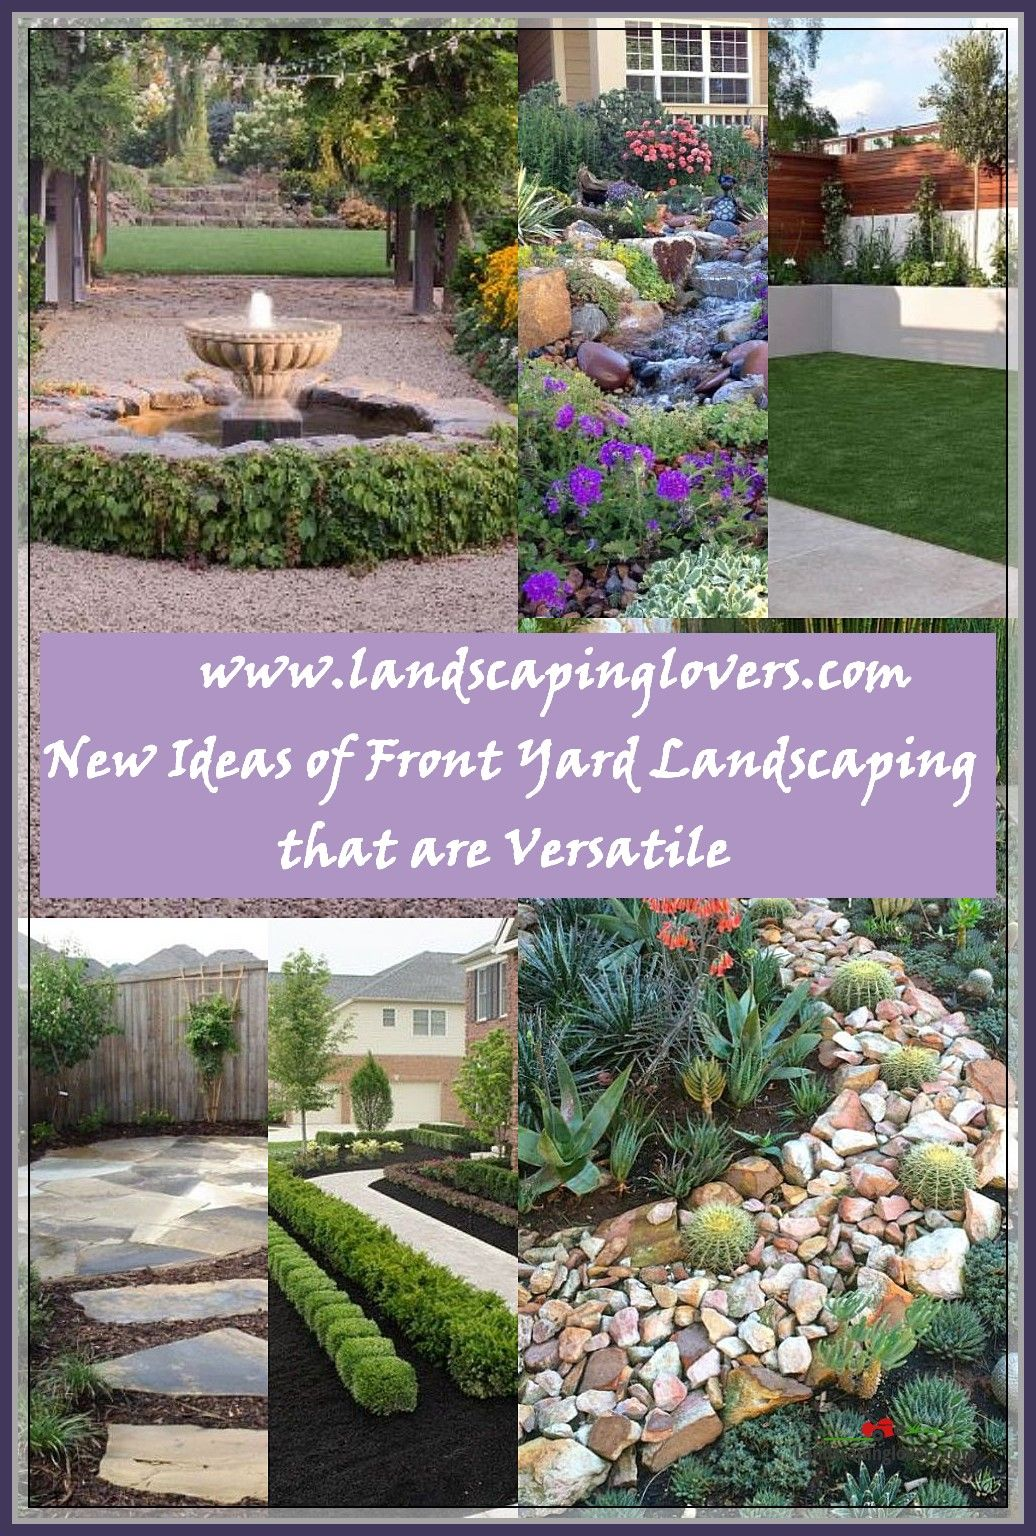 Tips On Hiring A Professional Landscaping Designer Landscaping Lovers Professional Landscaping Landscape Yard Landscaping